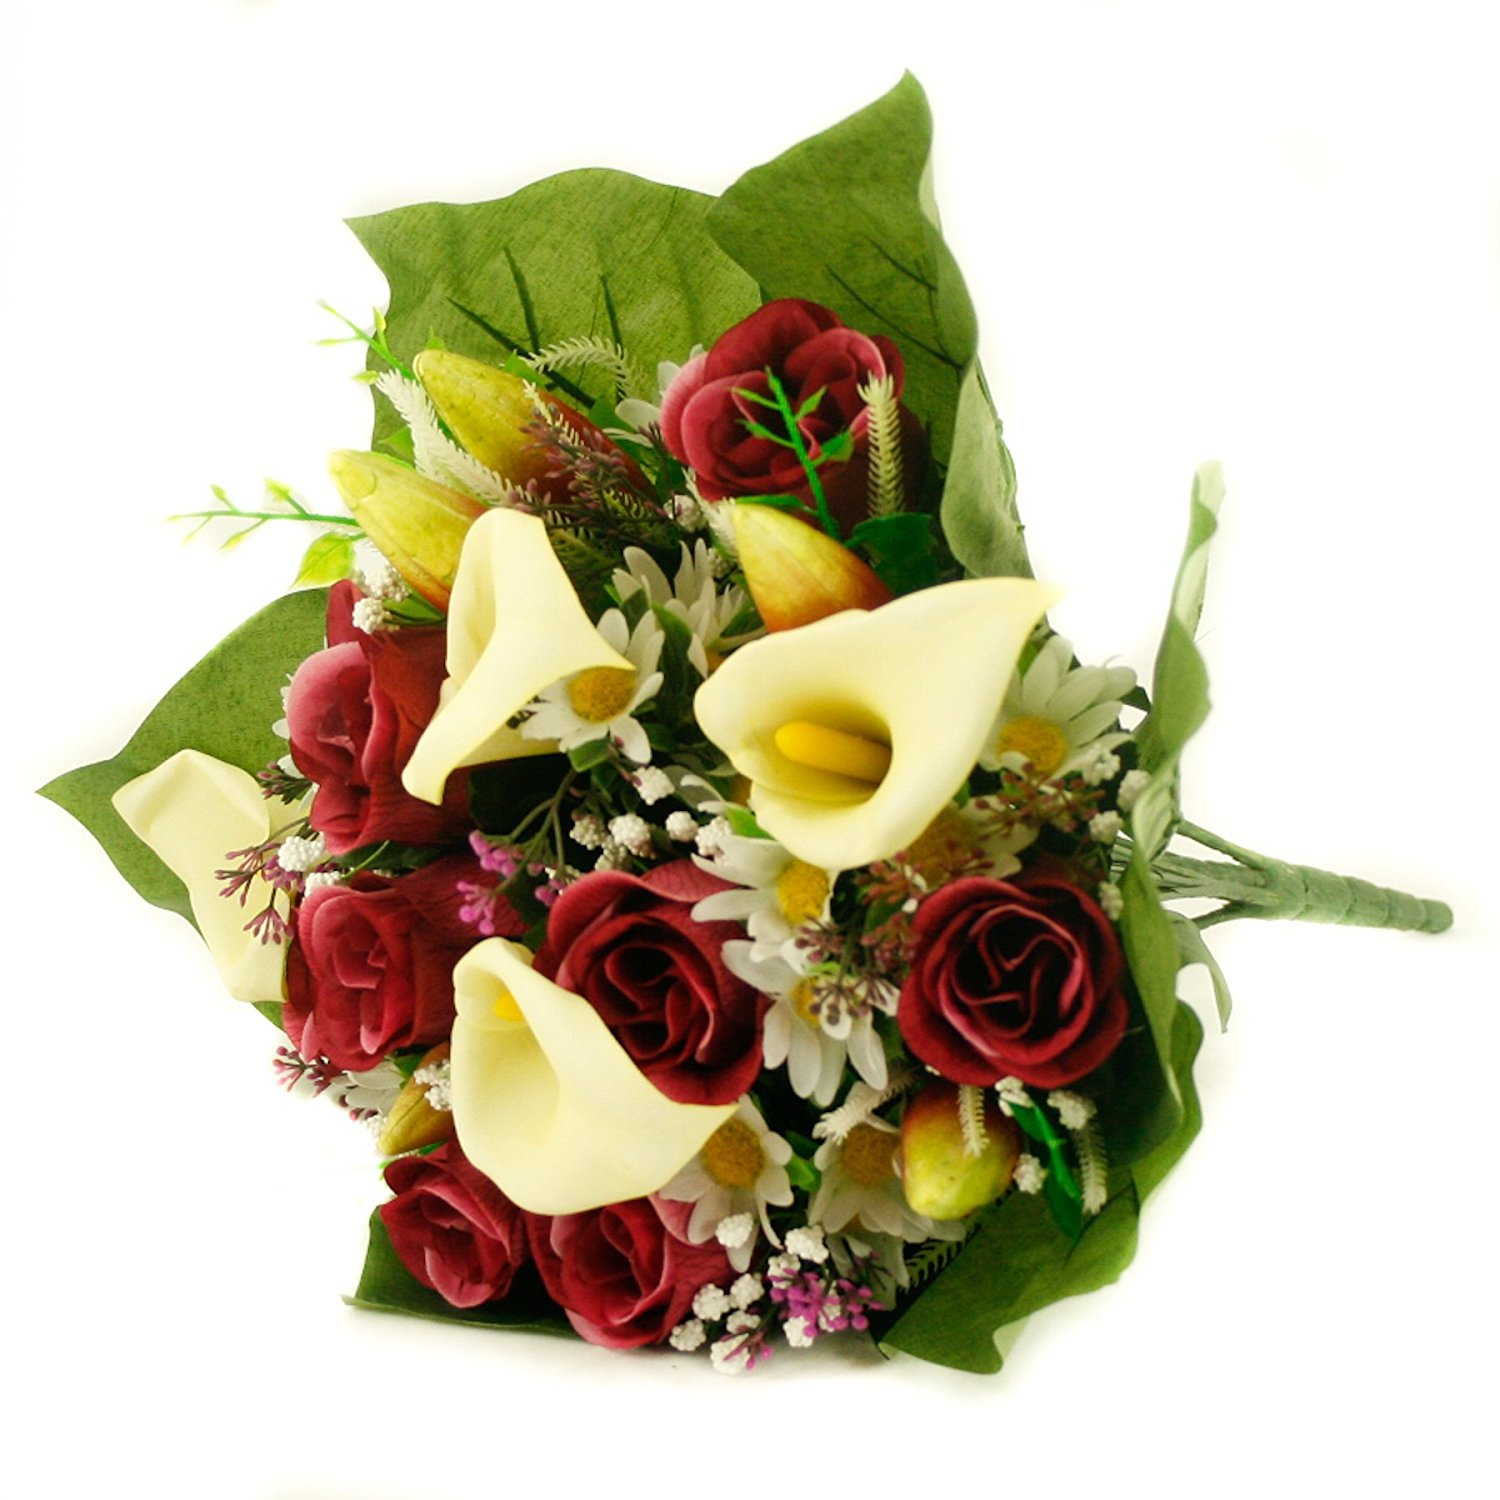 Cheap flower lillies find flower lillies deals on line at alibaba get quotations floristrywarehouse artificial silk mixed flower bouquet calla lillies roses 16 inches burgundy izmirmasajfo